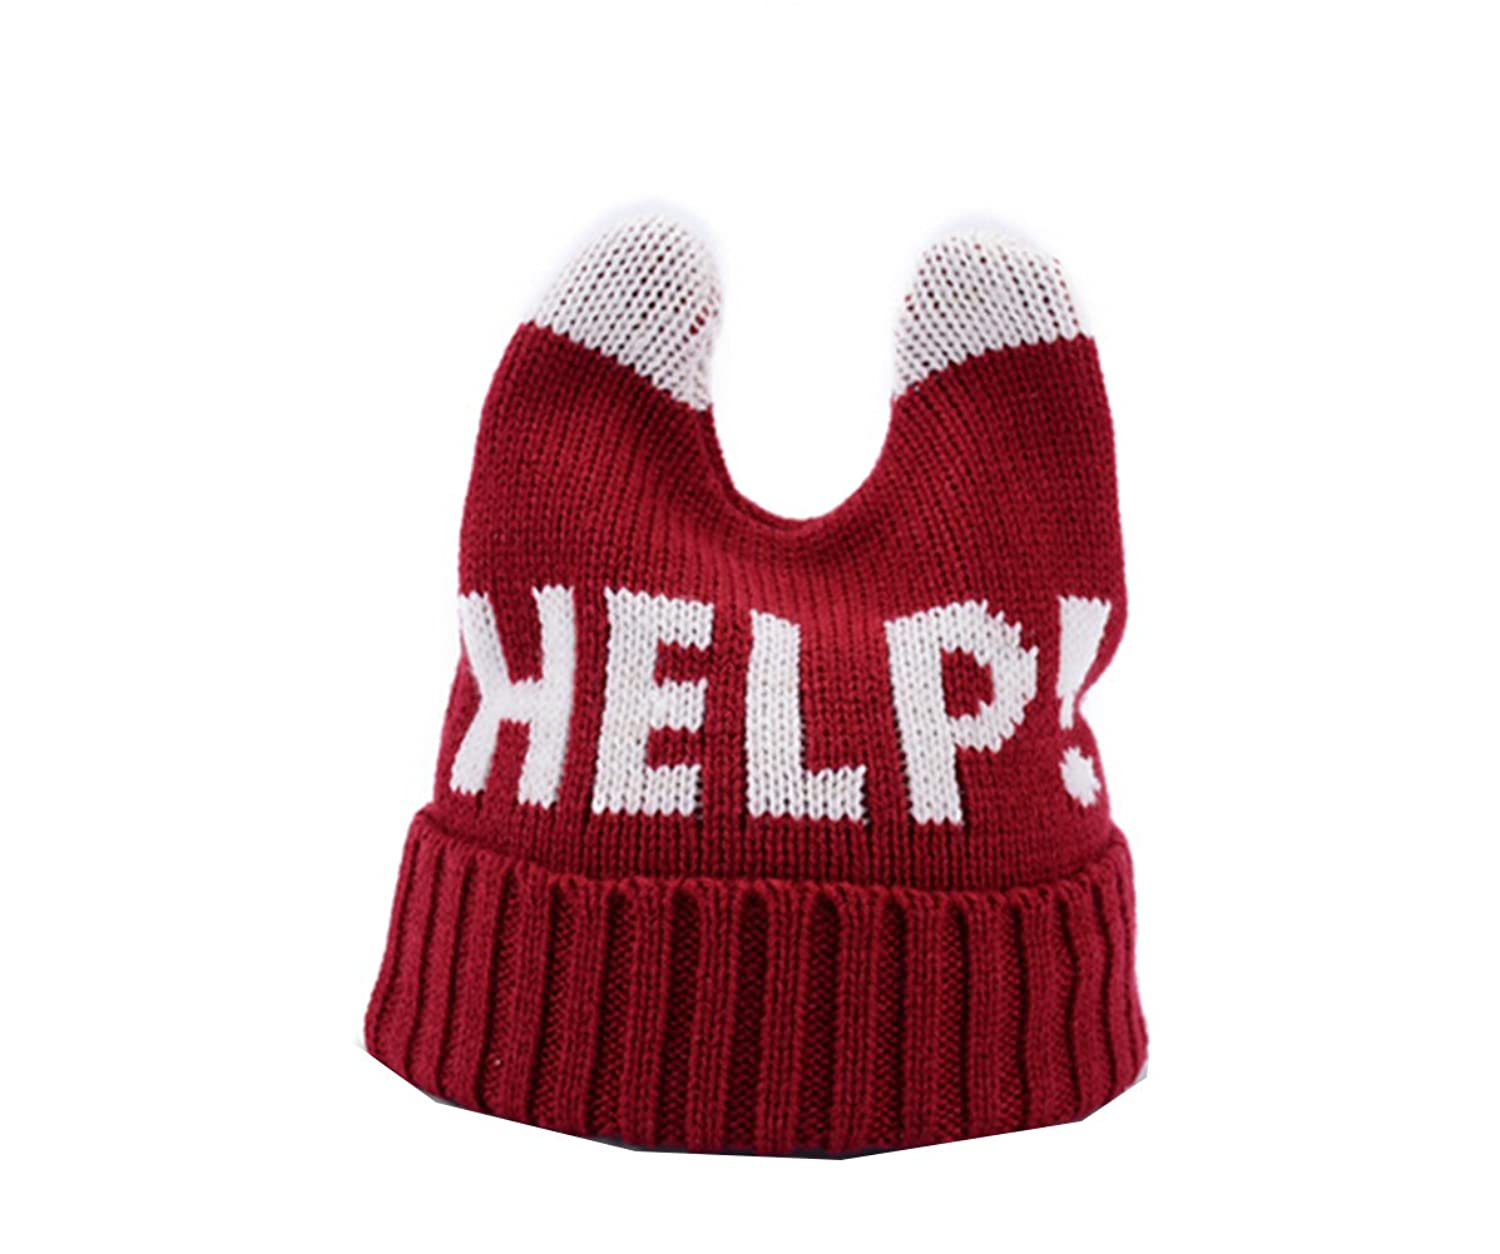 Km Women Autumn Fashion Boyish Warmth Hat Help Letter Cap